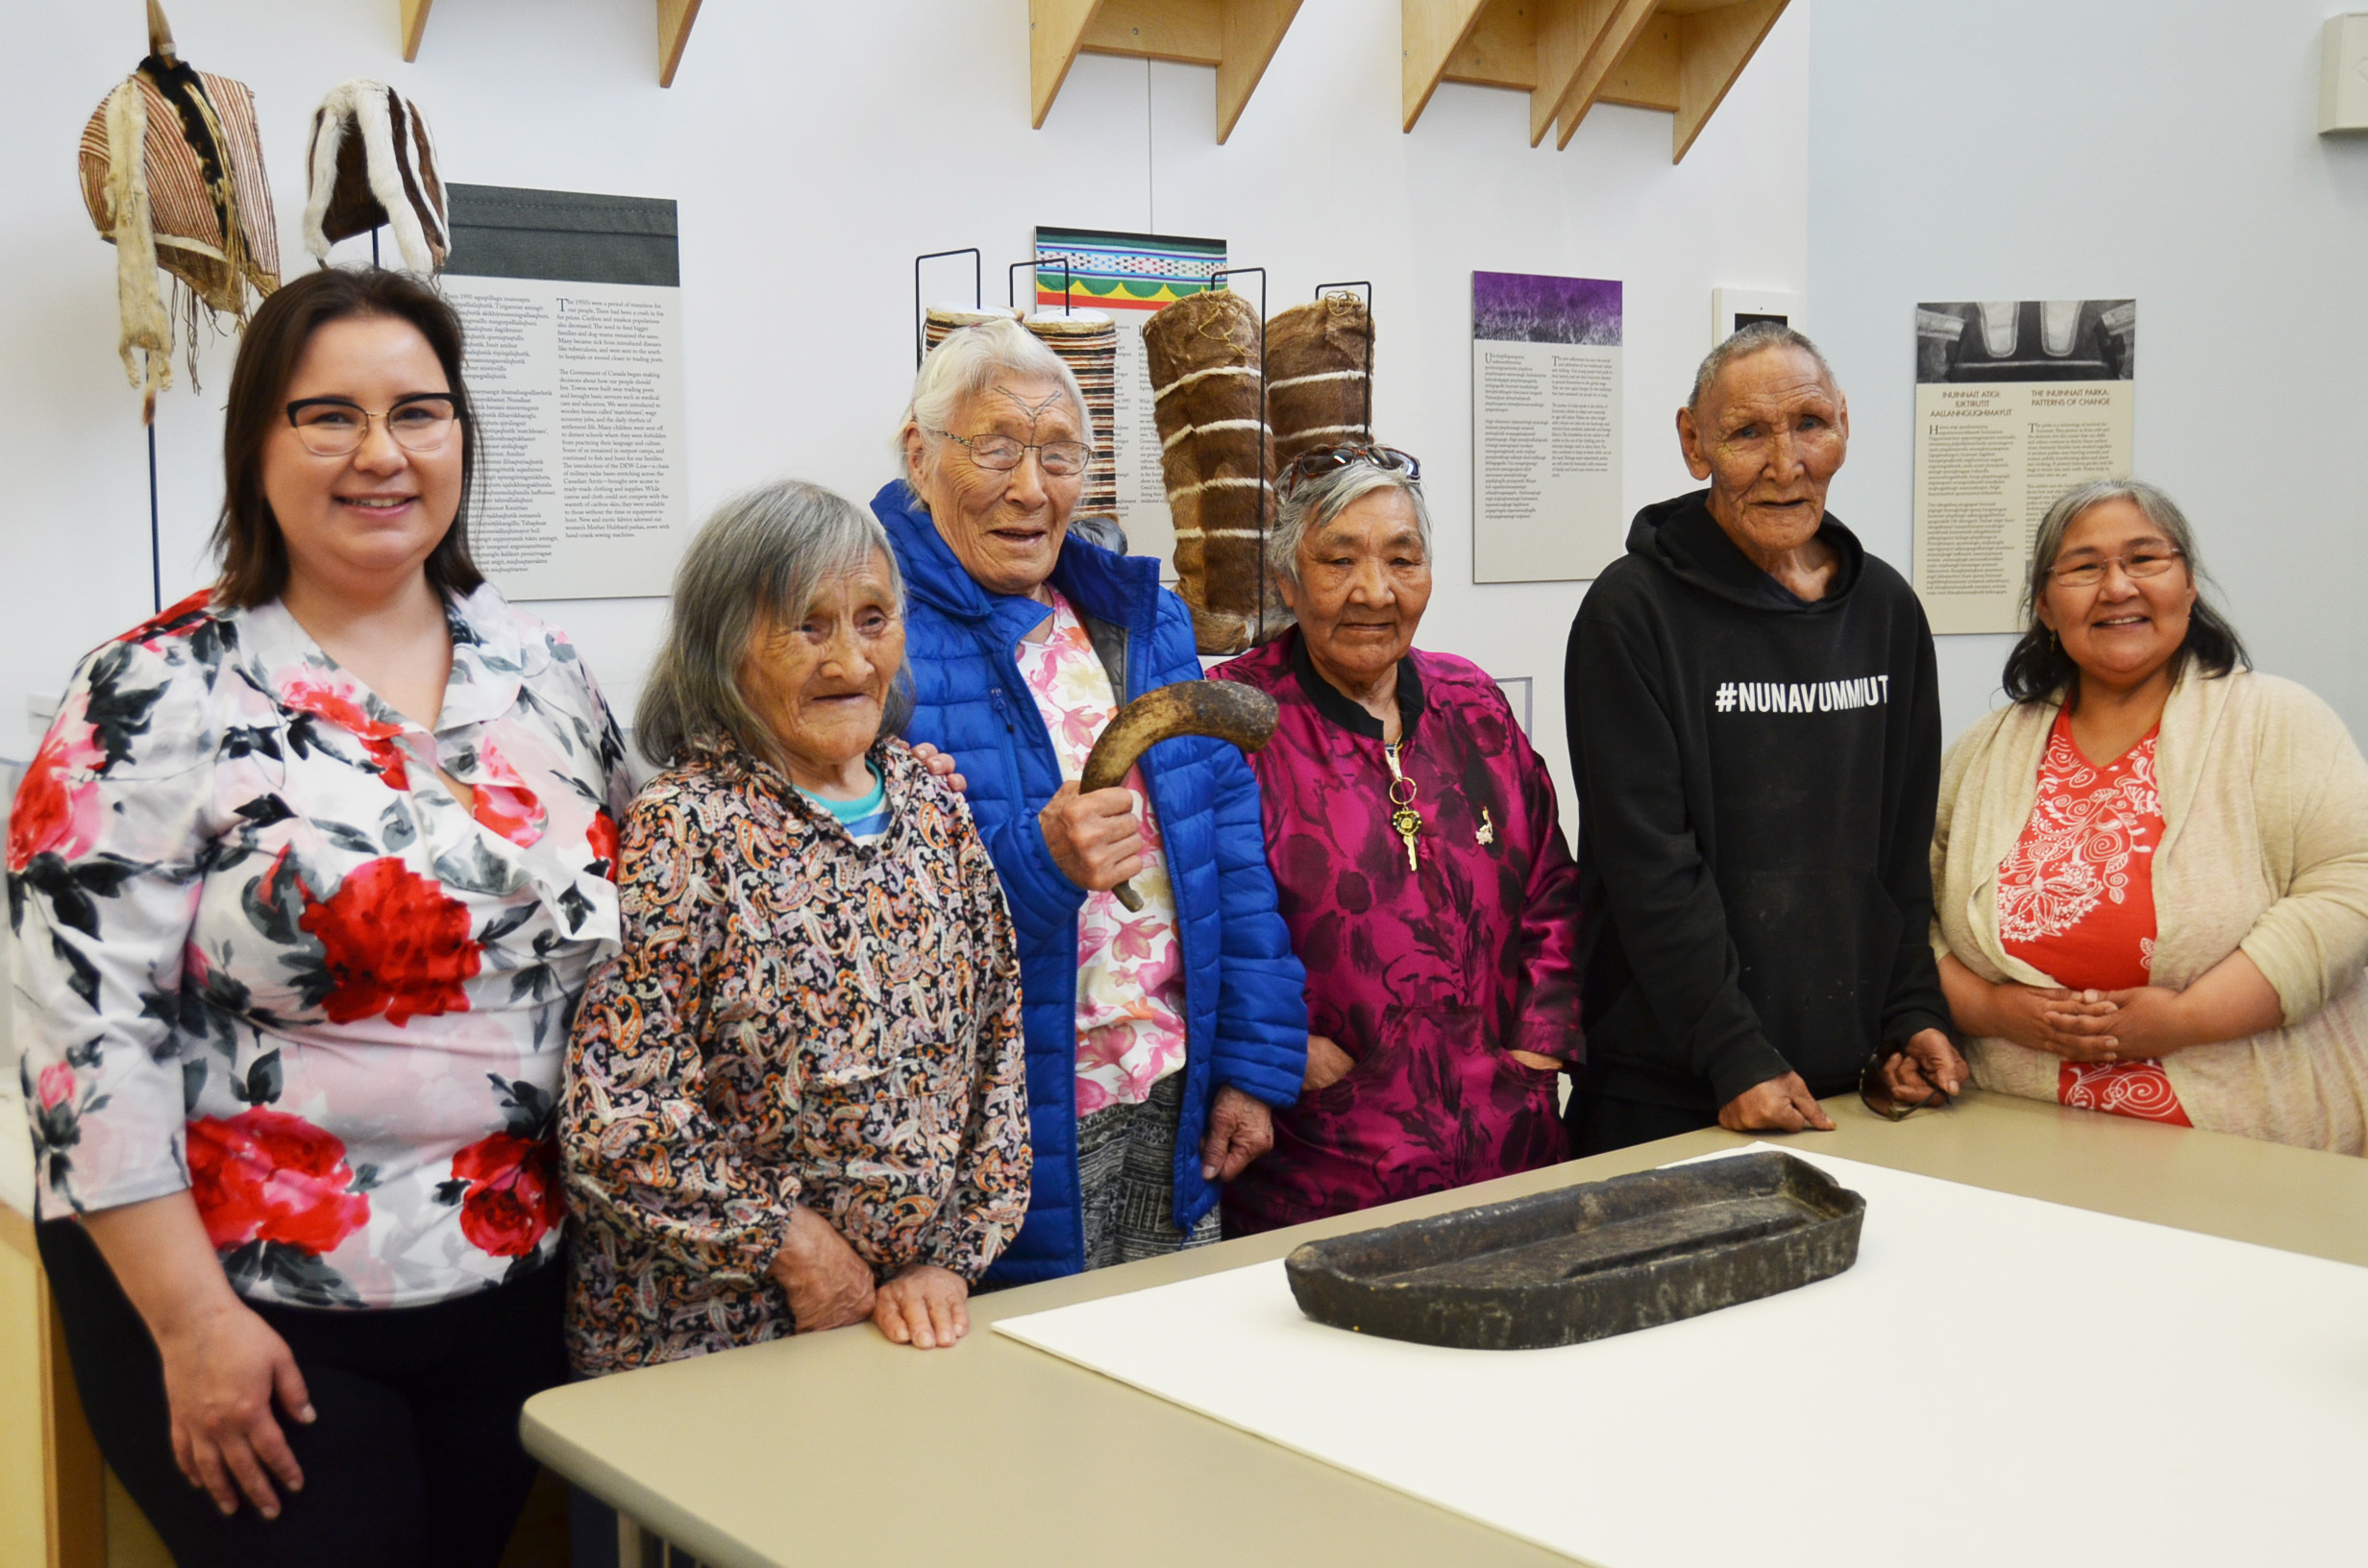 Pam Gross, left, poses for a photo with a group of elders at the May Hakongak Cultural Centre. Elders in residence at the centre sew traditional garments a few days a week, encouraging youth to drop by. (Pitquhirnikkut Ilihautiniq/Kitikmeot Heritage Society)